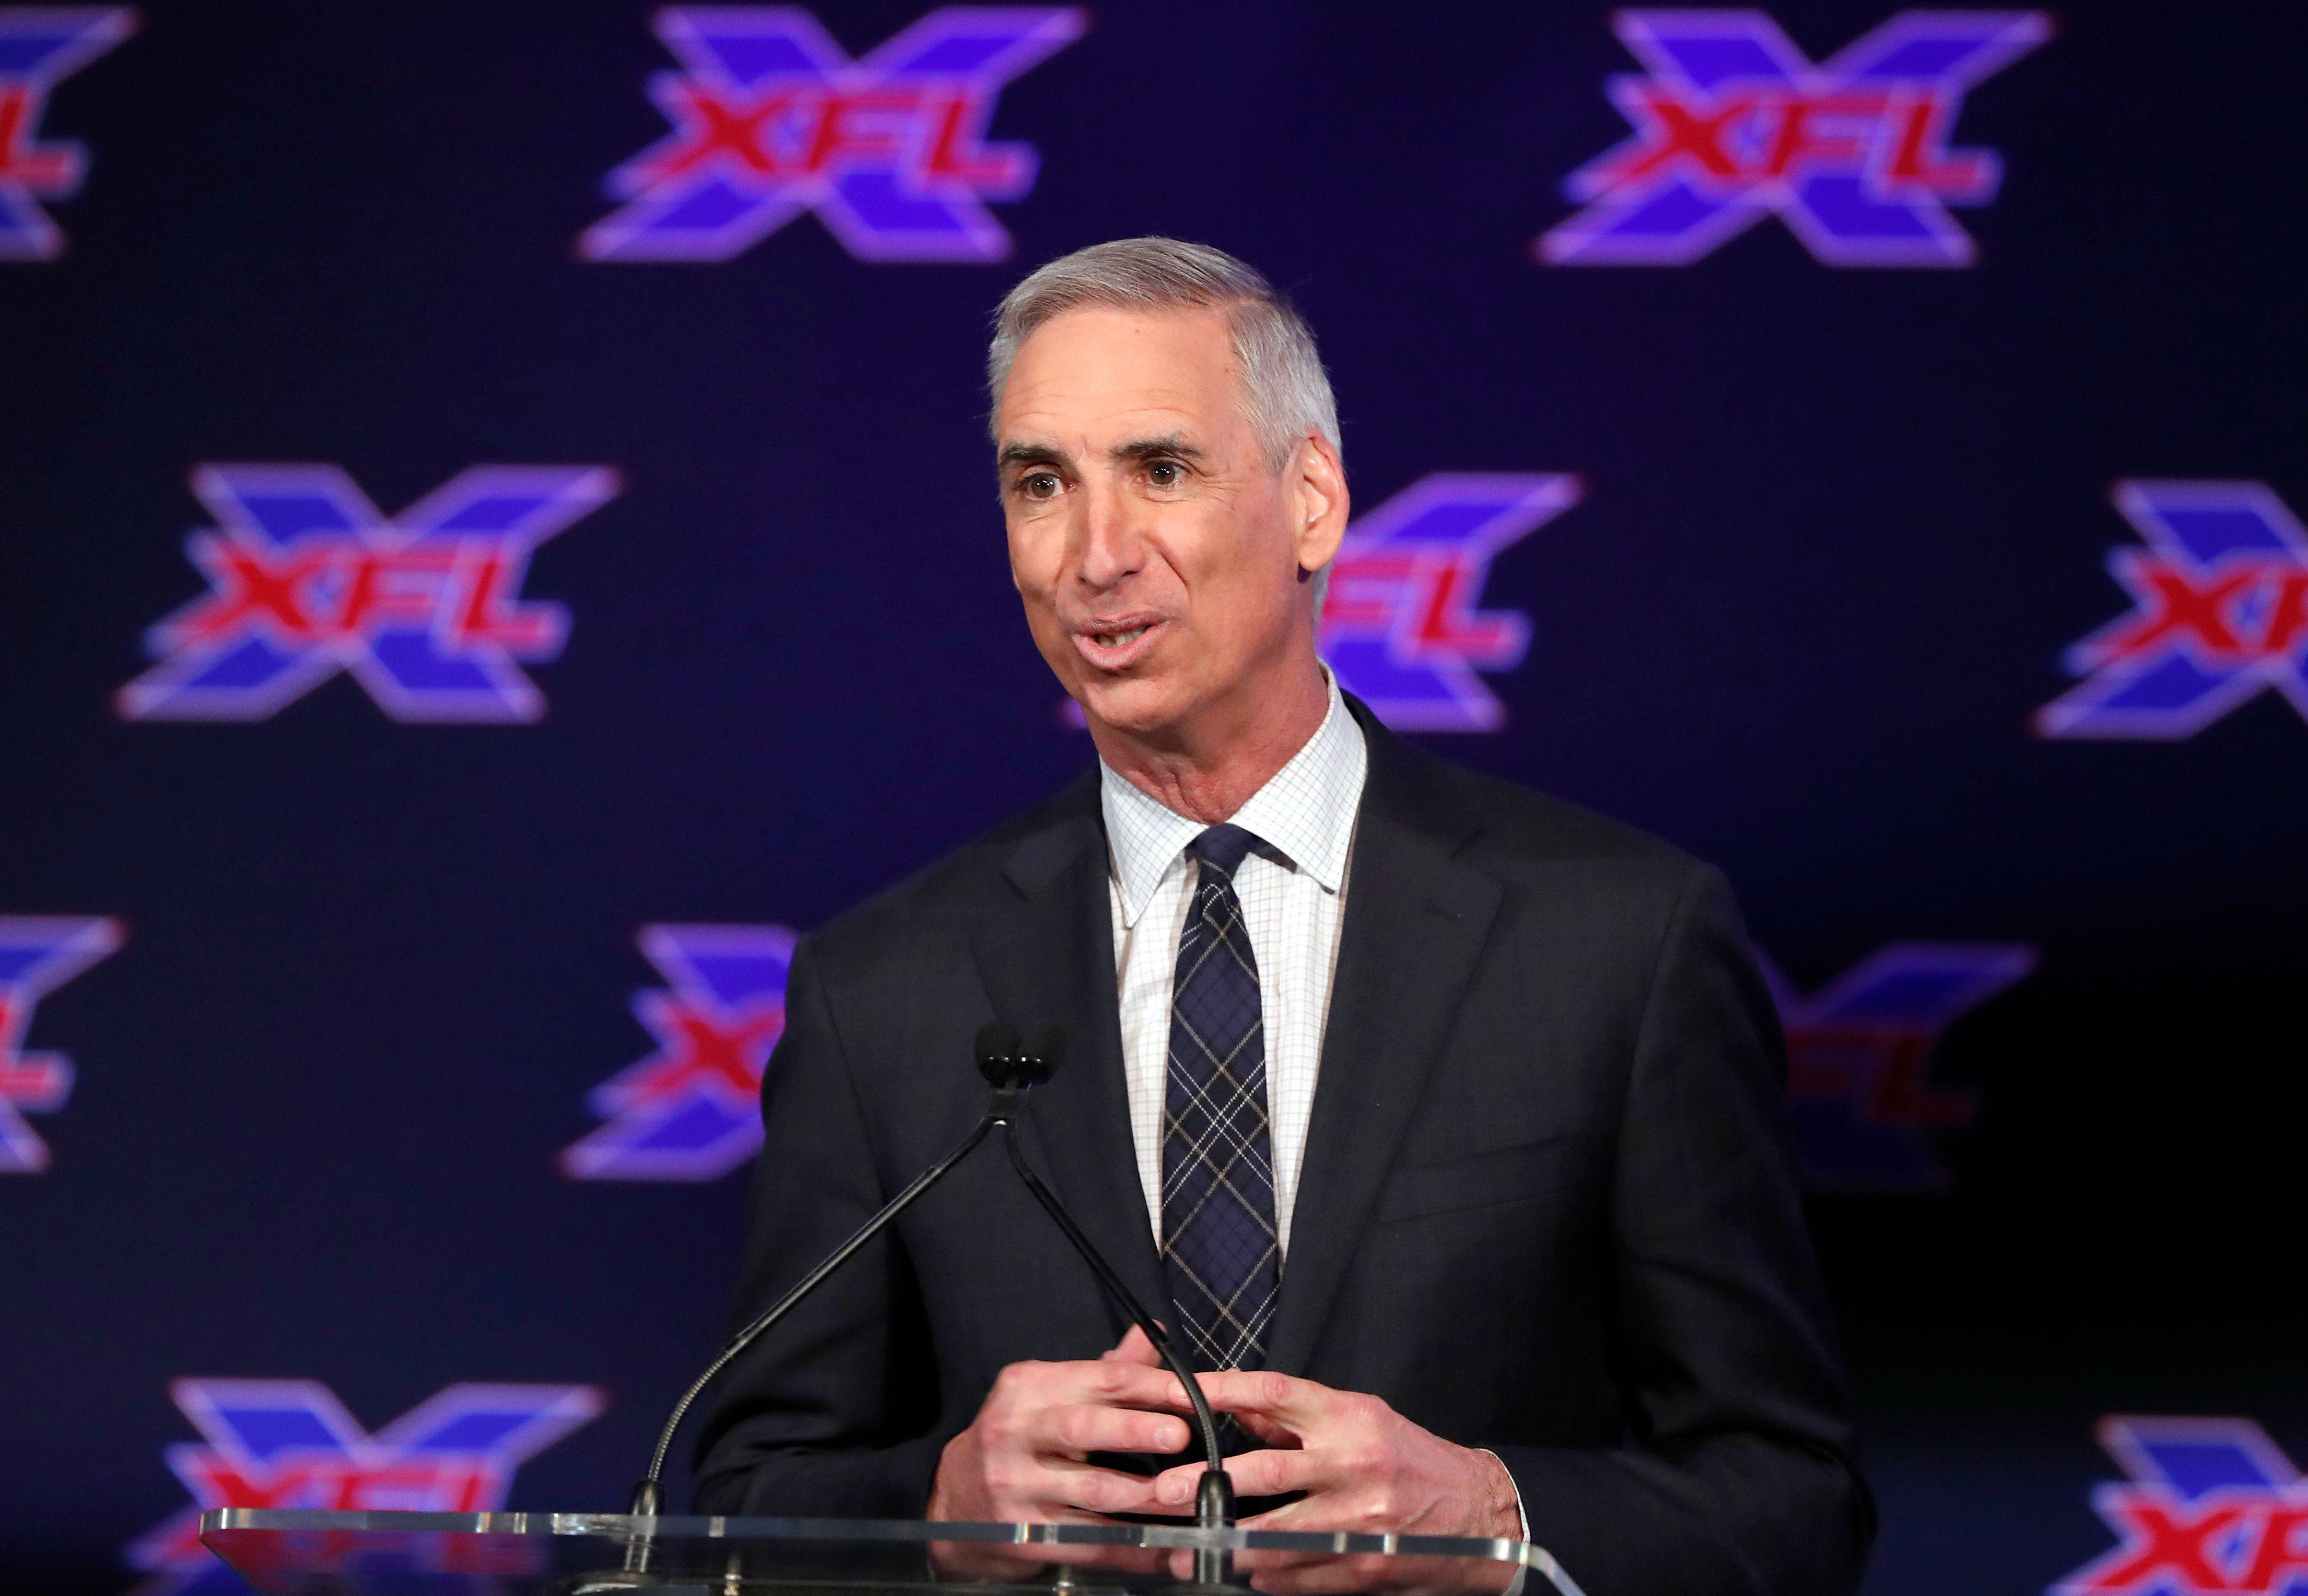 XFL Commissioner reveals 'single most important' differentiator from other NFL challengers